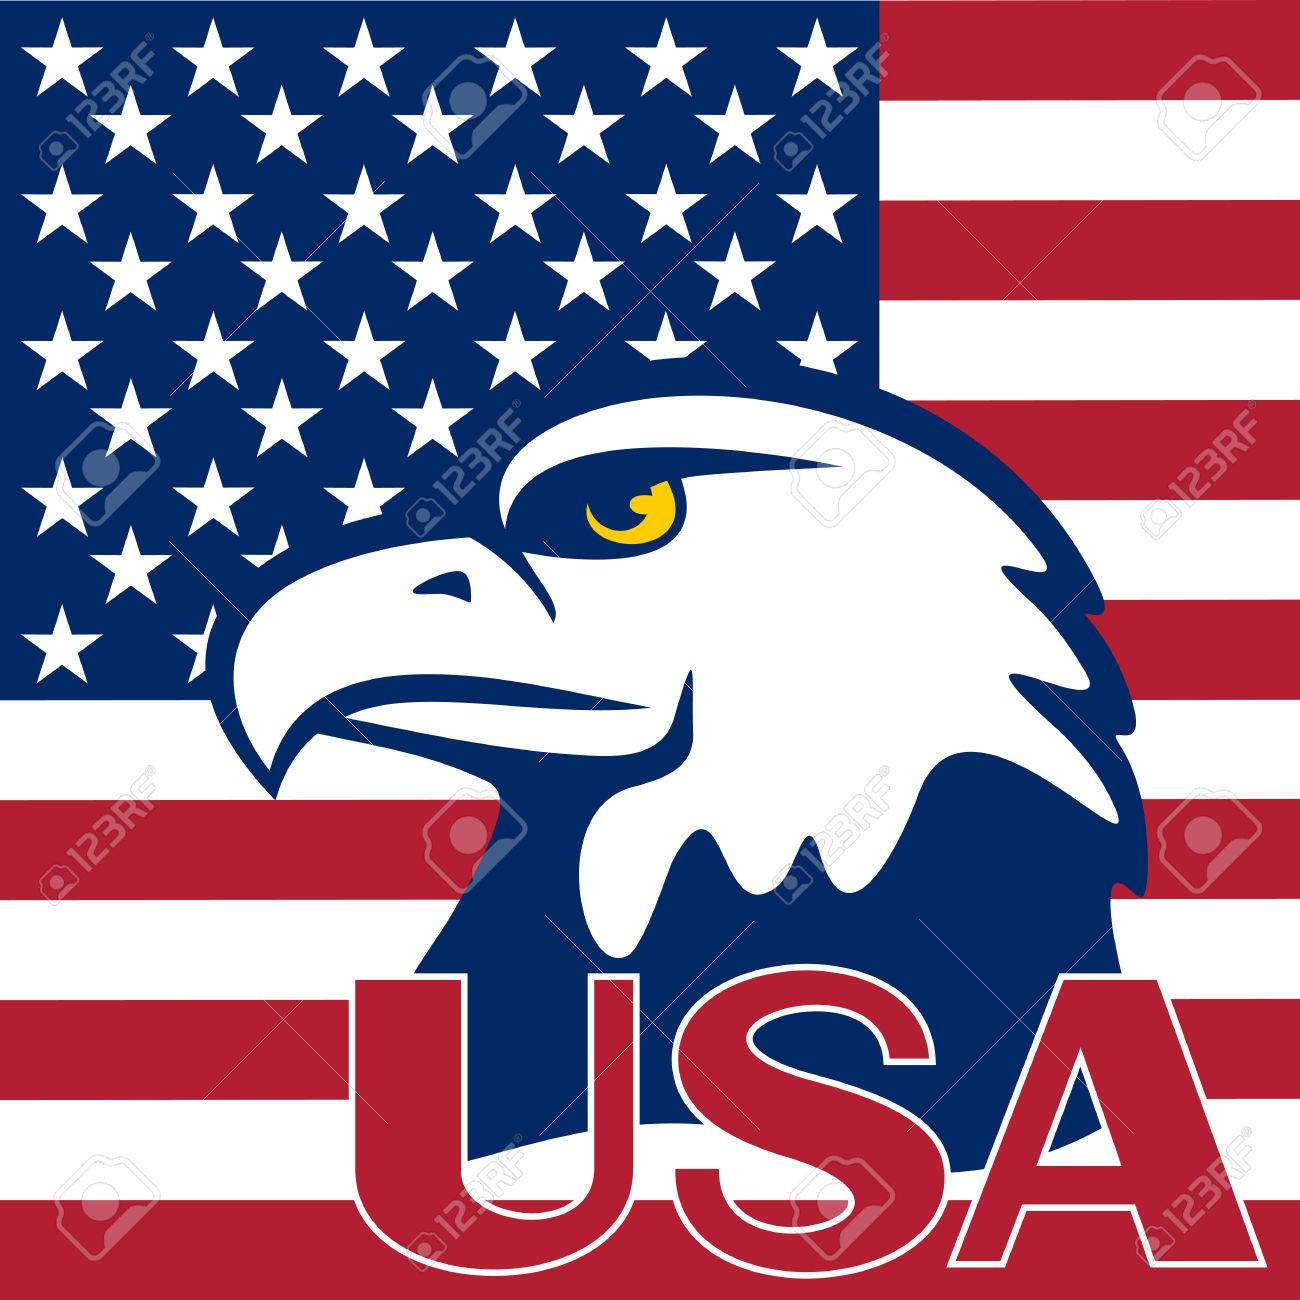 Eagle Is Located On A Flag Of The Usa Symbols Of The United